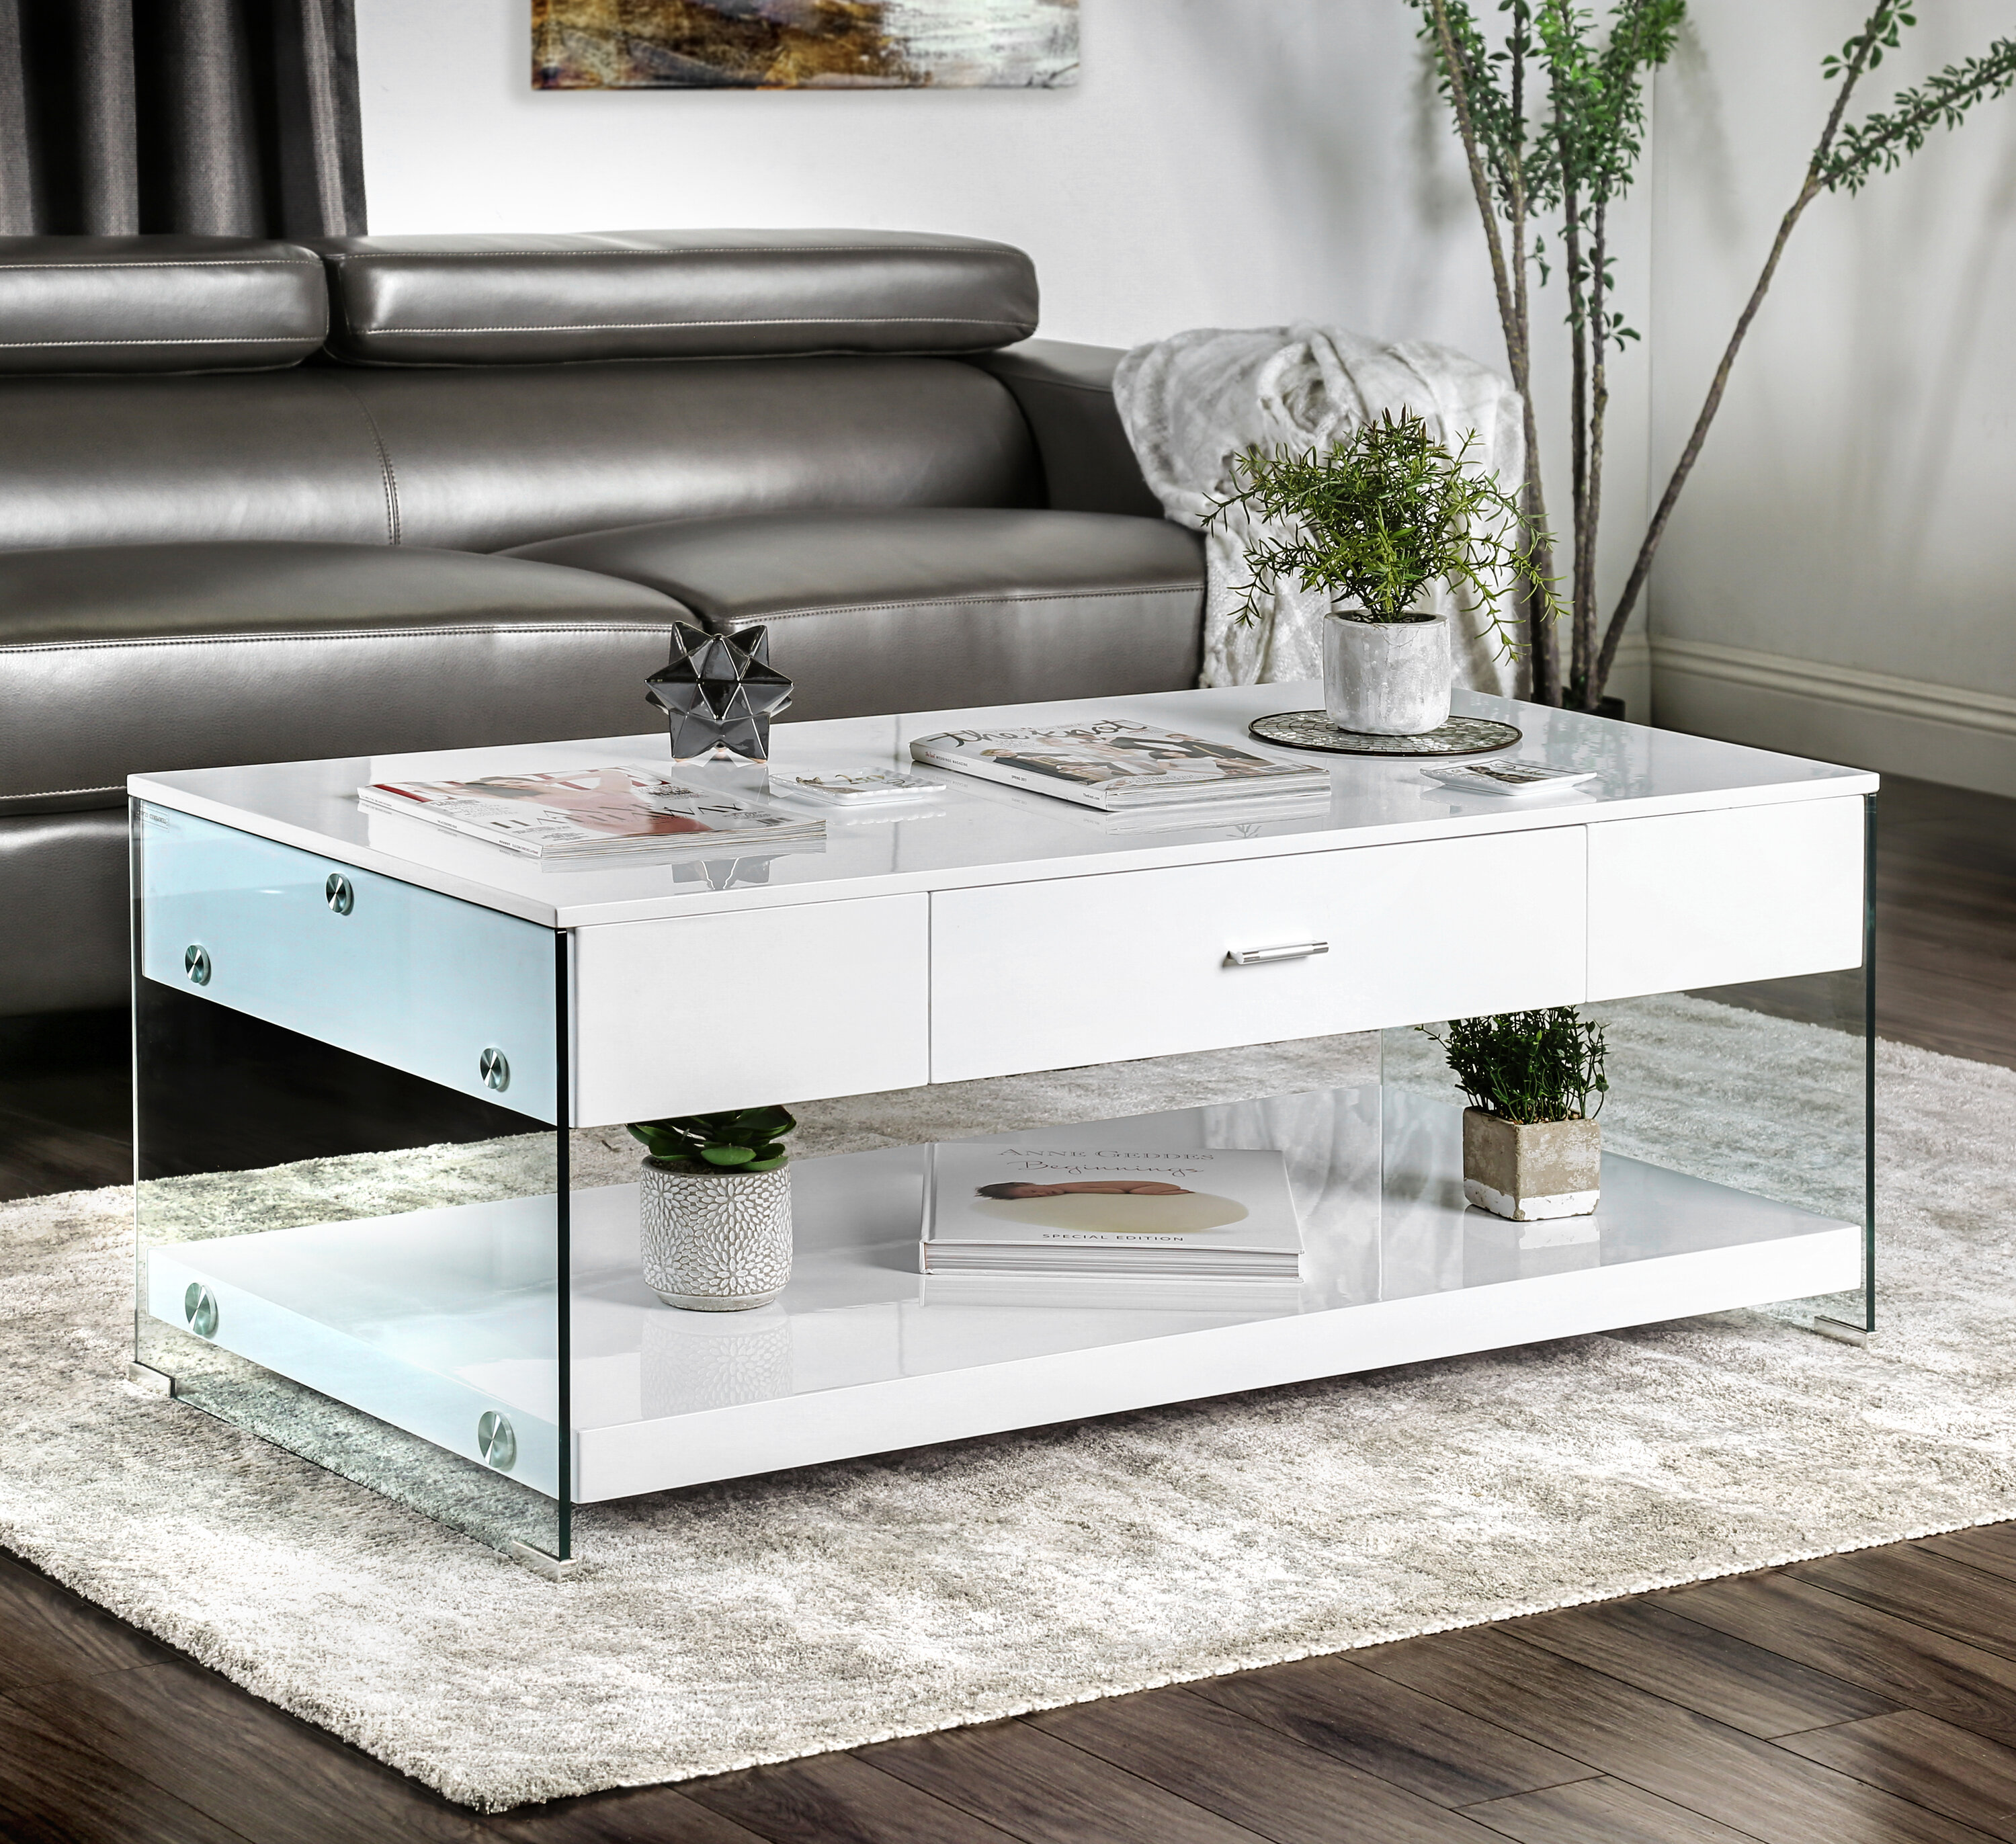 Guero Contemporary Coffee Table With Storage